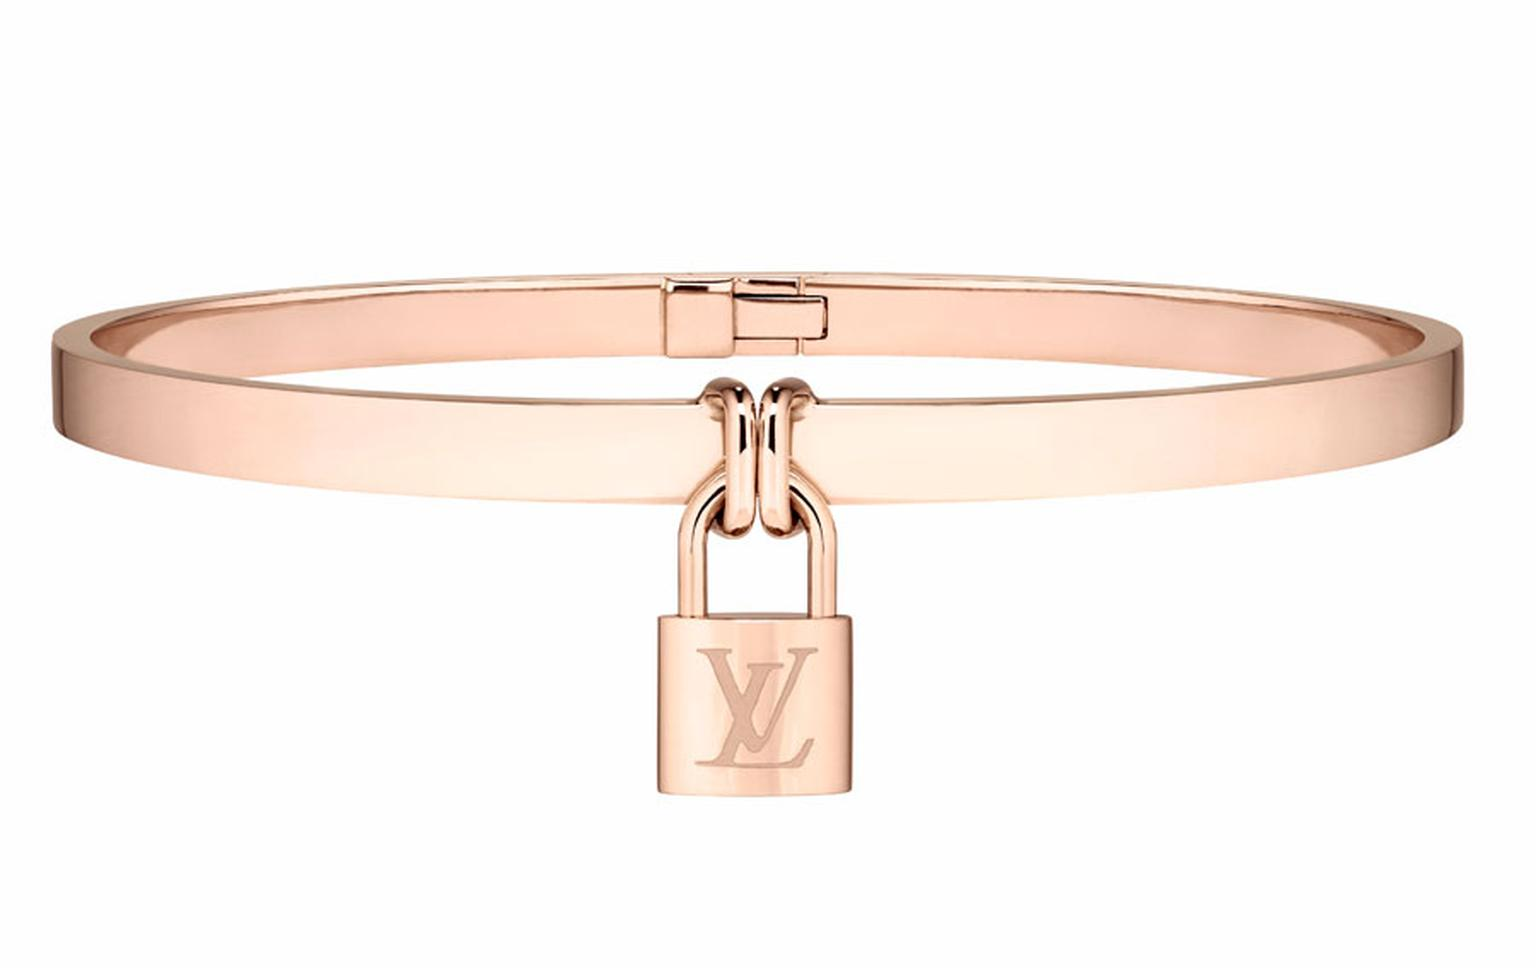 Louis-Vuitton-_BRACELET-LOCKIT-OR_Vue-de-face.jpg